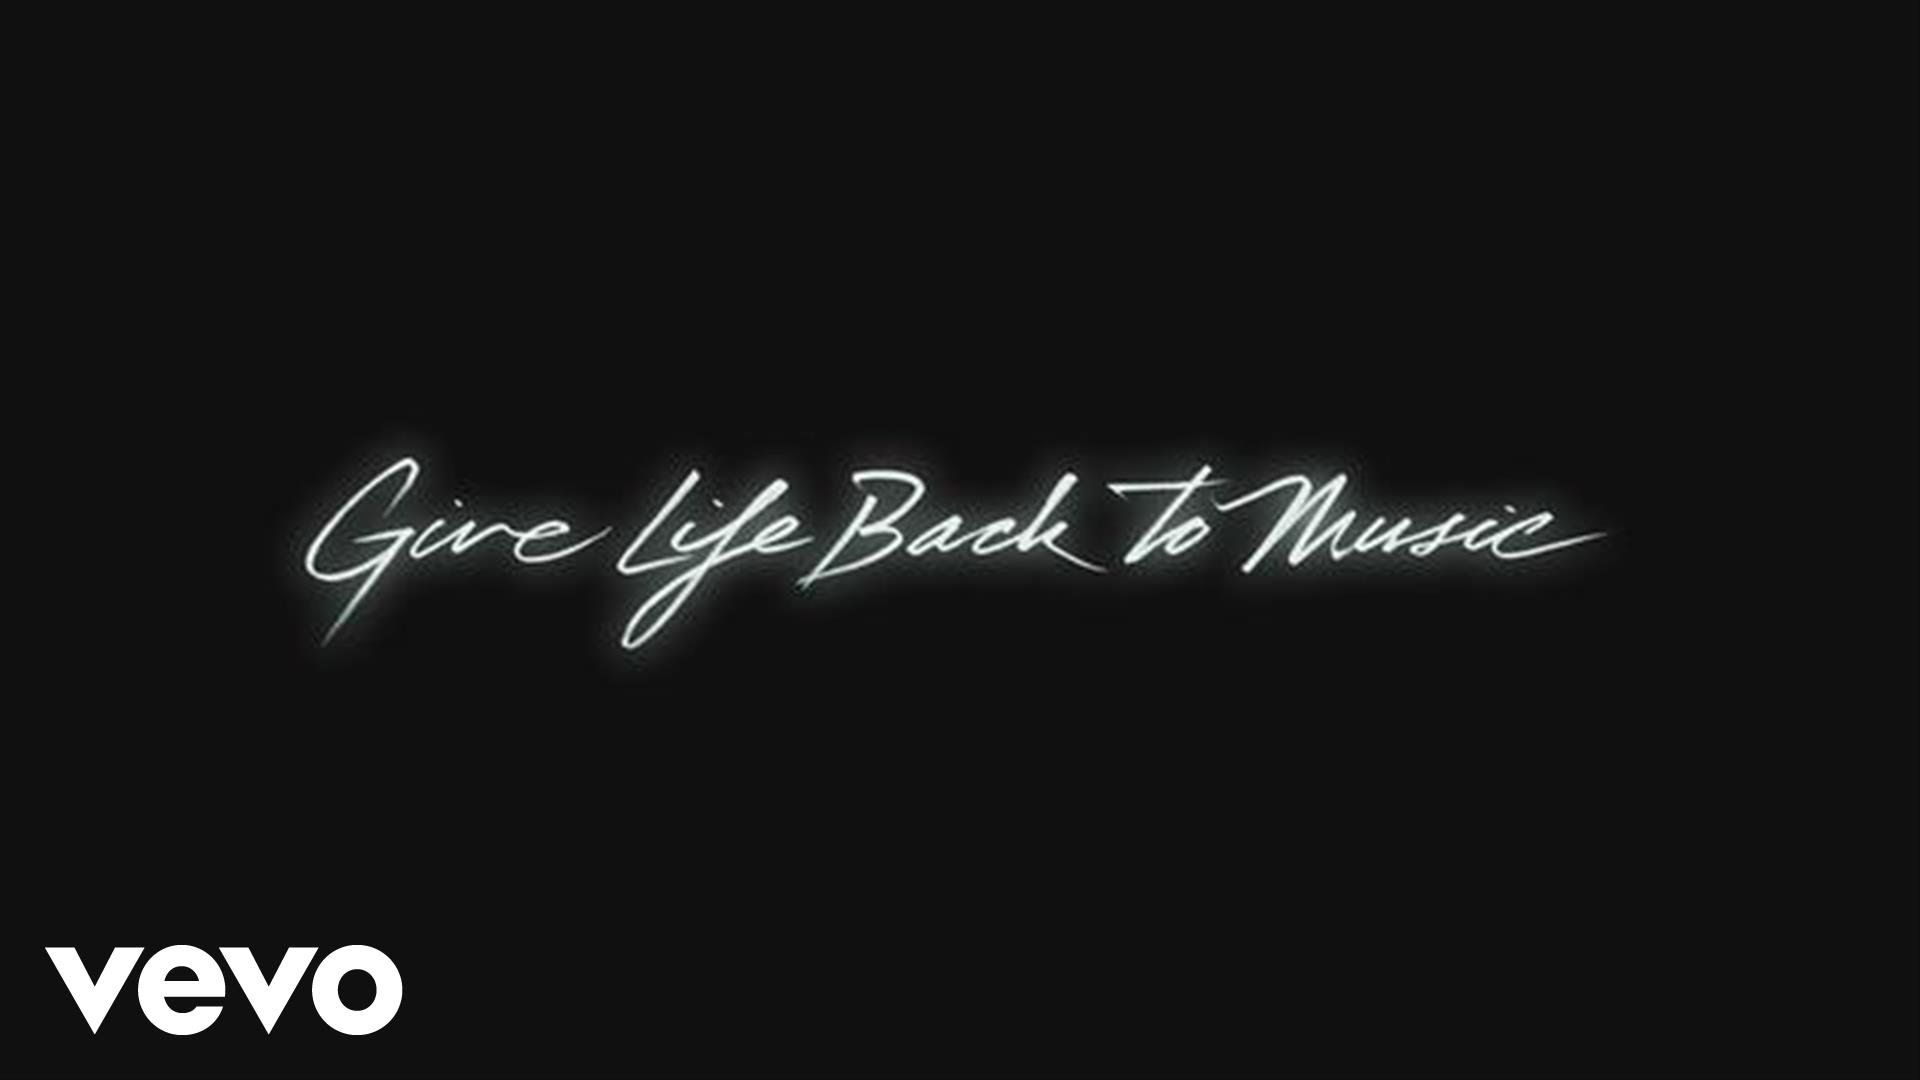 Daft Punk Give Life Back To Music Official Audio Daft Punk Color In Film Songs